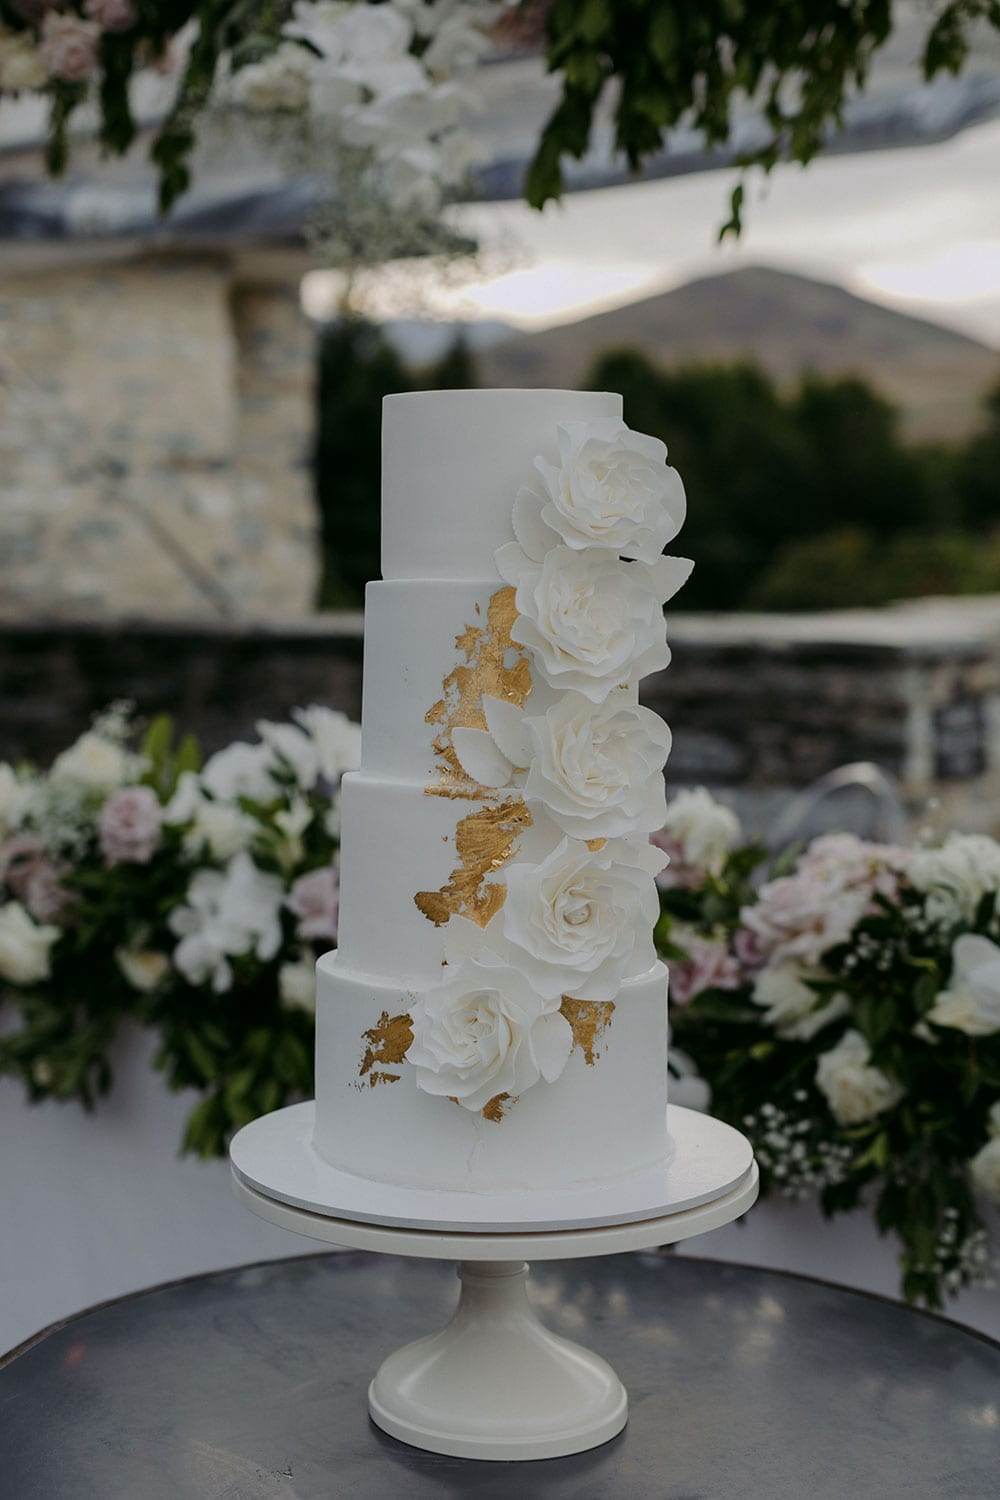 Vinka Design Features Real Weddings - wedding cake 4 tiers gold leaf white flowers